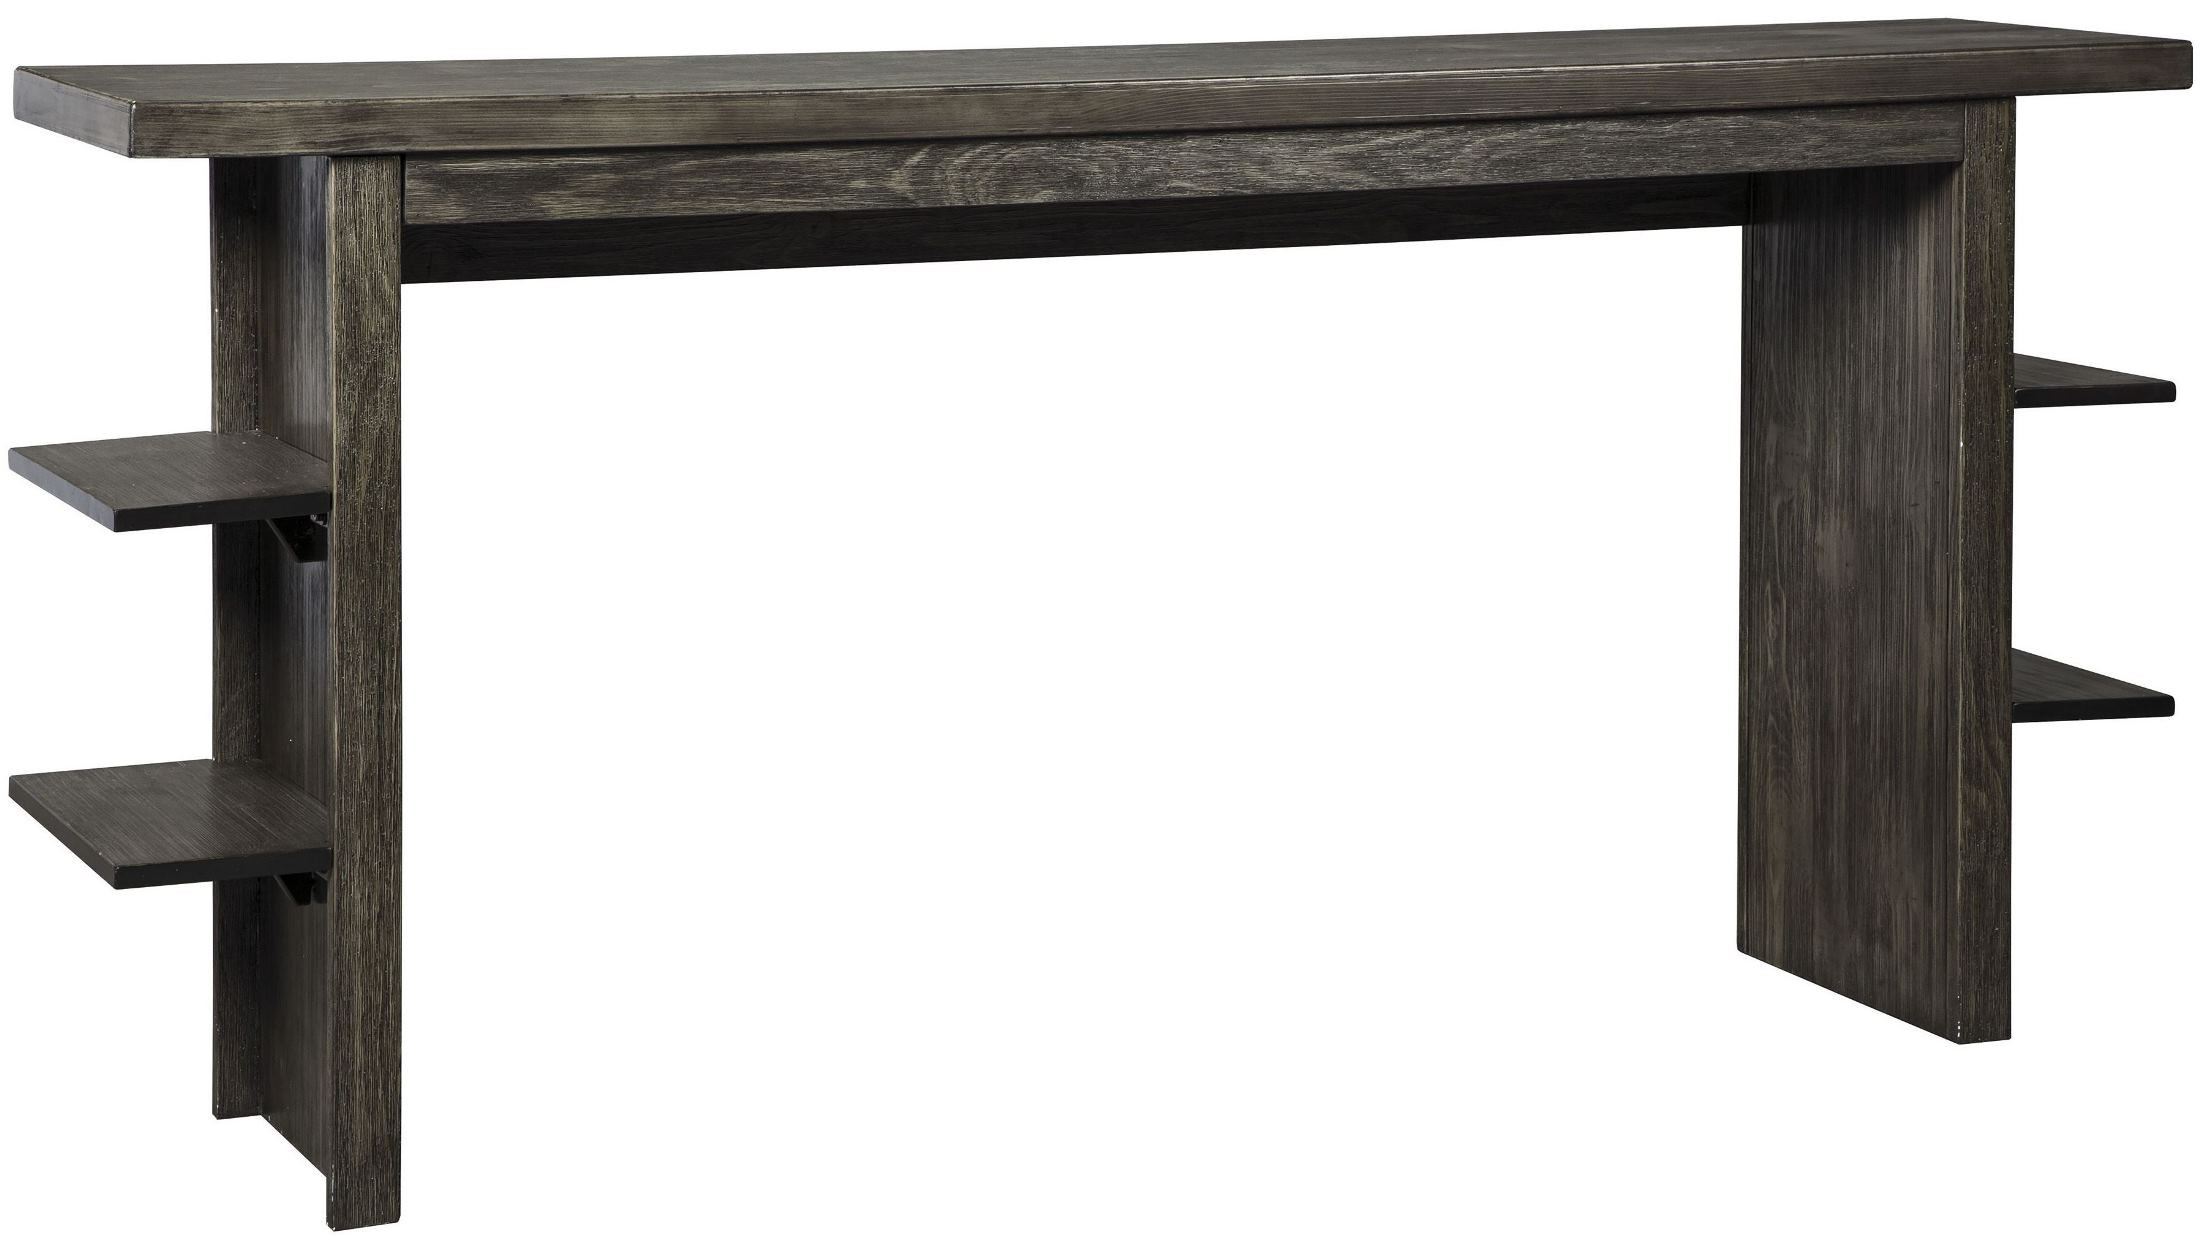 Lamoille Dark Gray Long Counter Height Dining Table from  : d639 33 sw1 from colemanfurniture.com size 2200 x 1241 jpeg 237kB